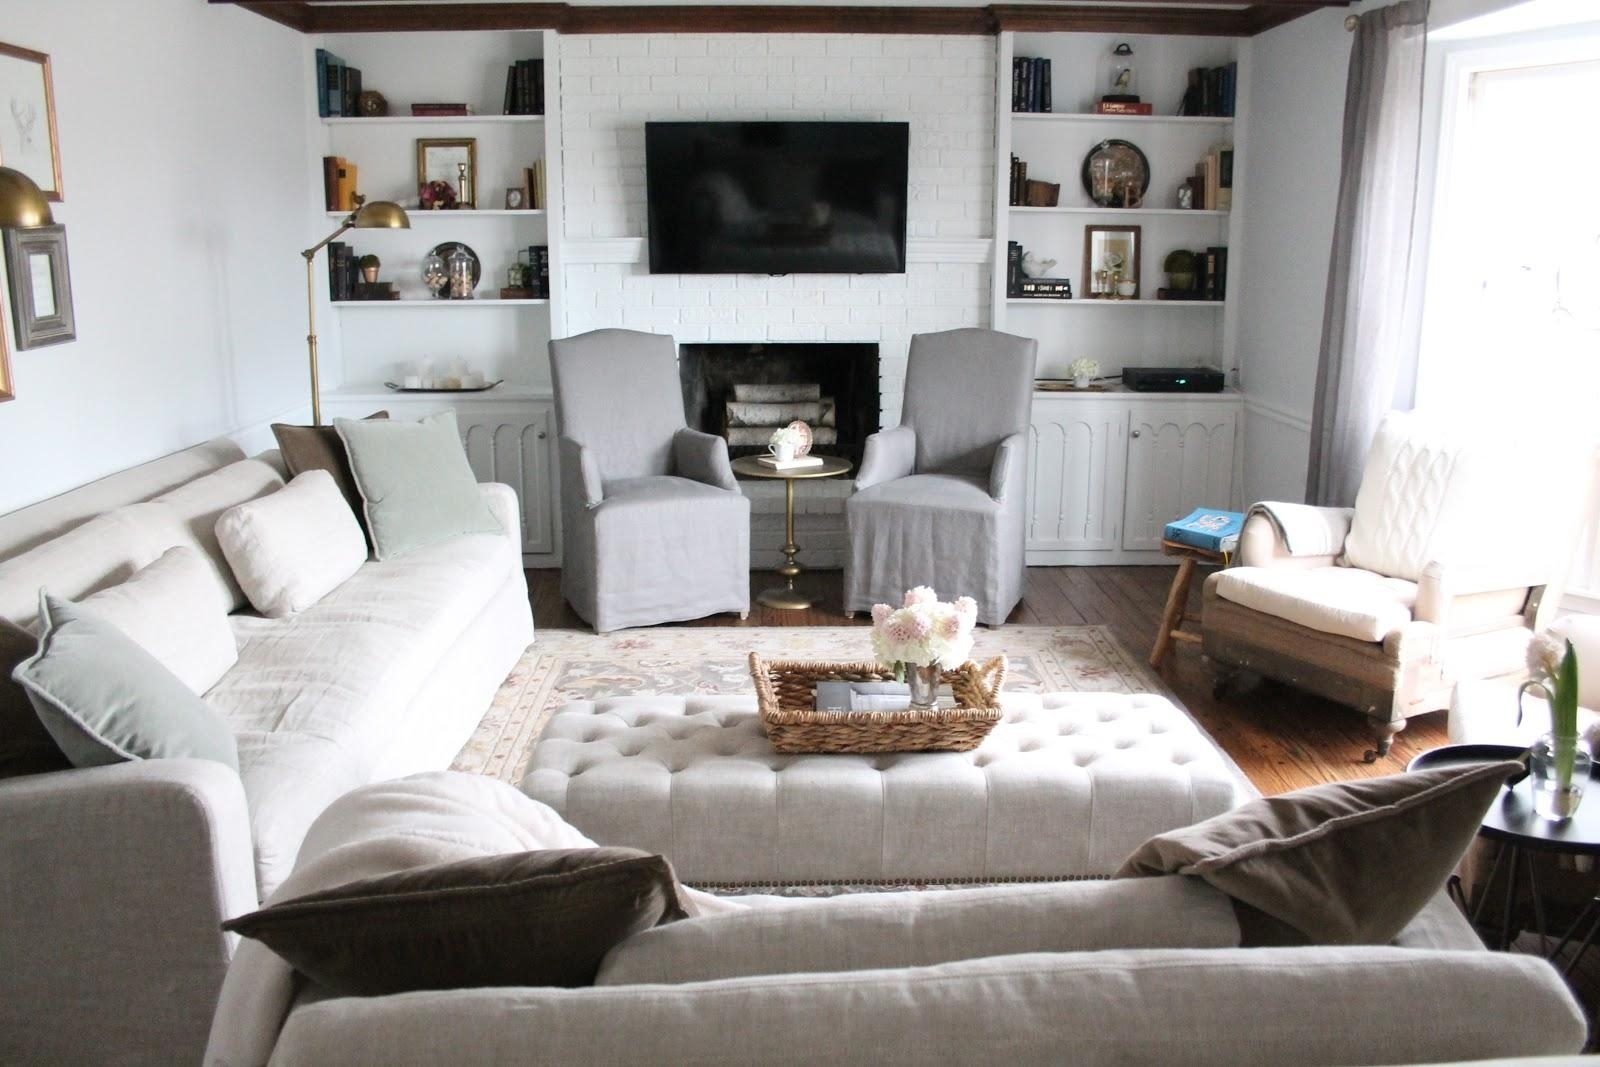 Furniture : Restoration Hardware Couch Beautiful Cloud Ii Sectional Regarding Restoration Hardware Sectional Sofas (Image 4 of 10)